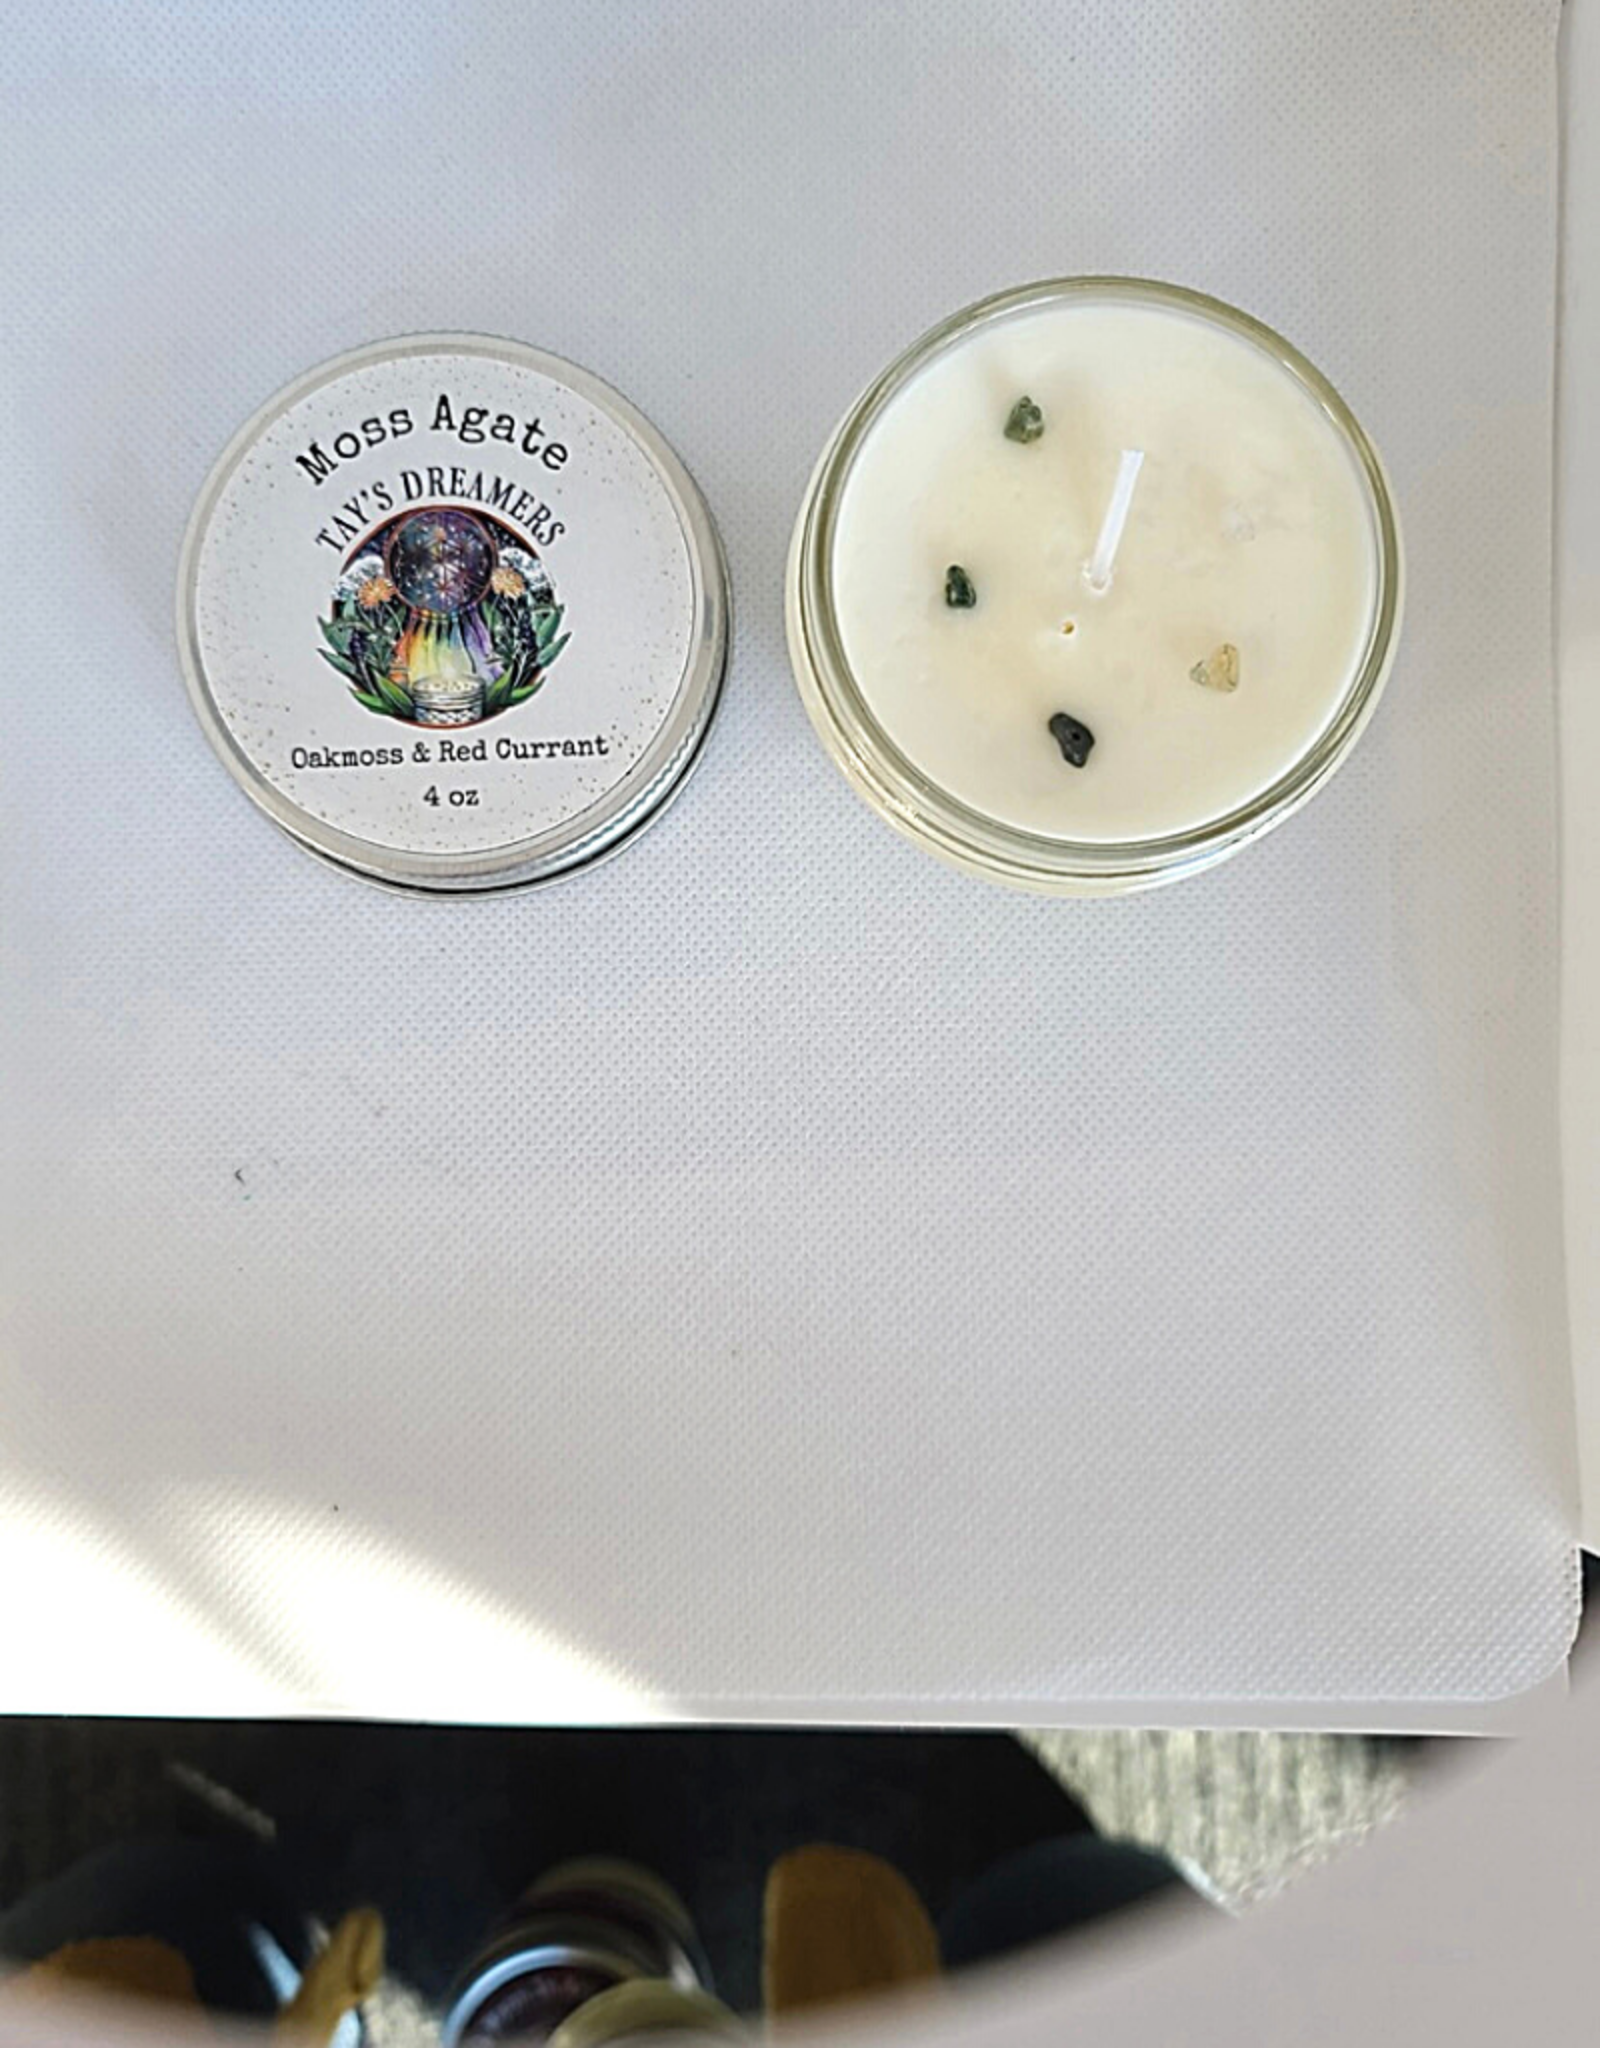 Tay's Dreamers - 4oz Candle Oakmoss & Red Currant